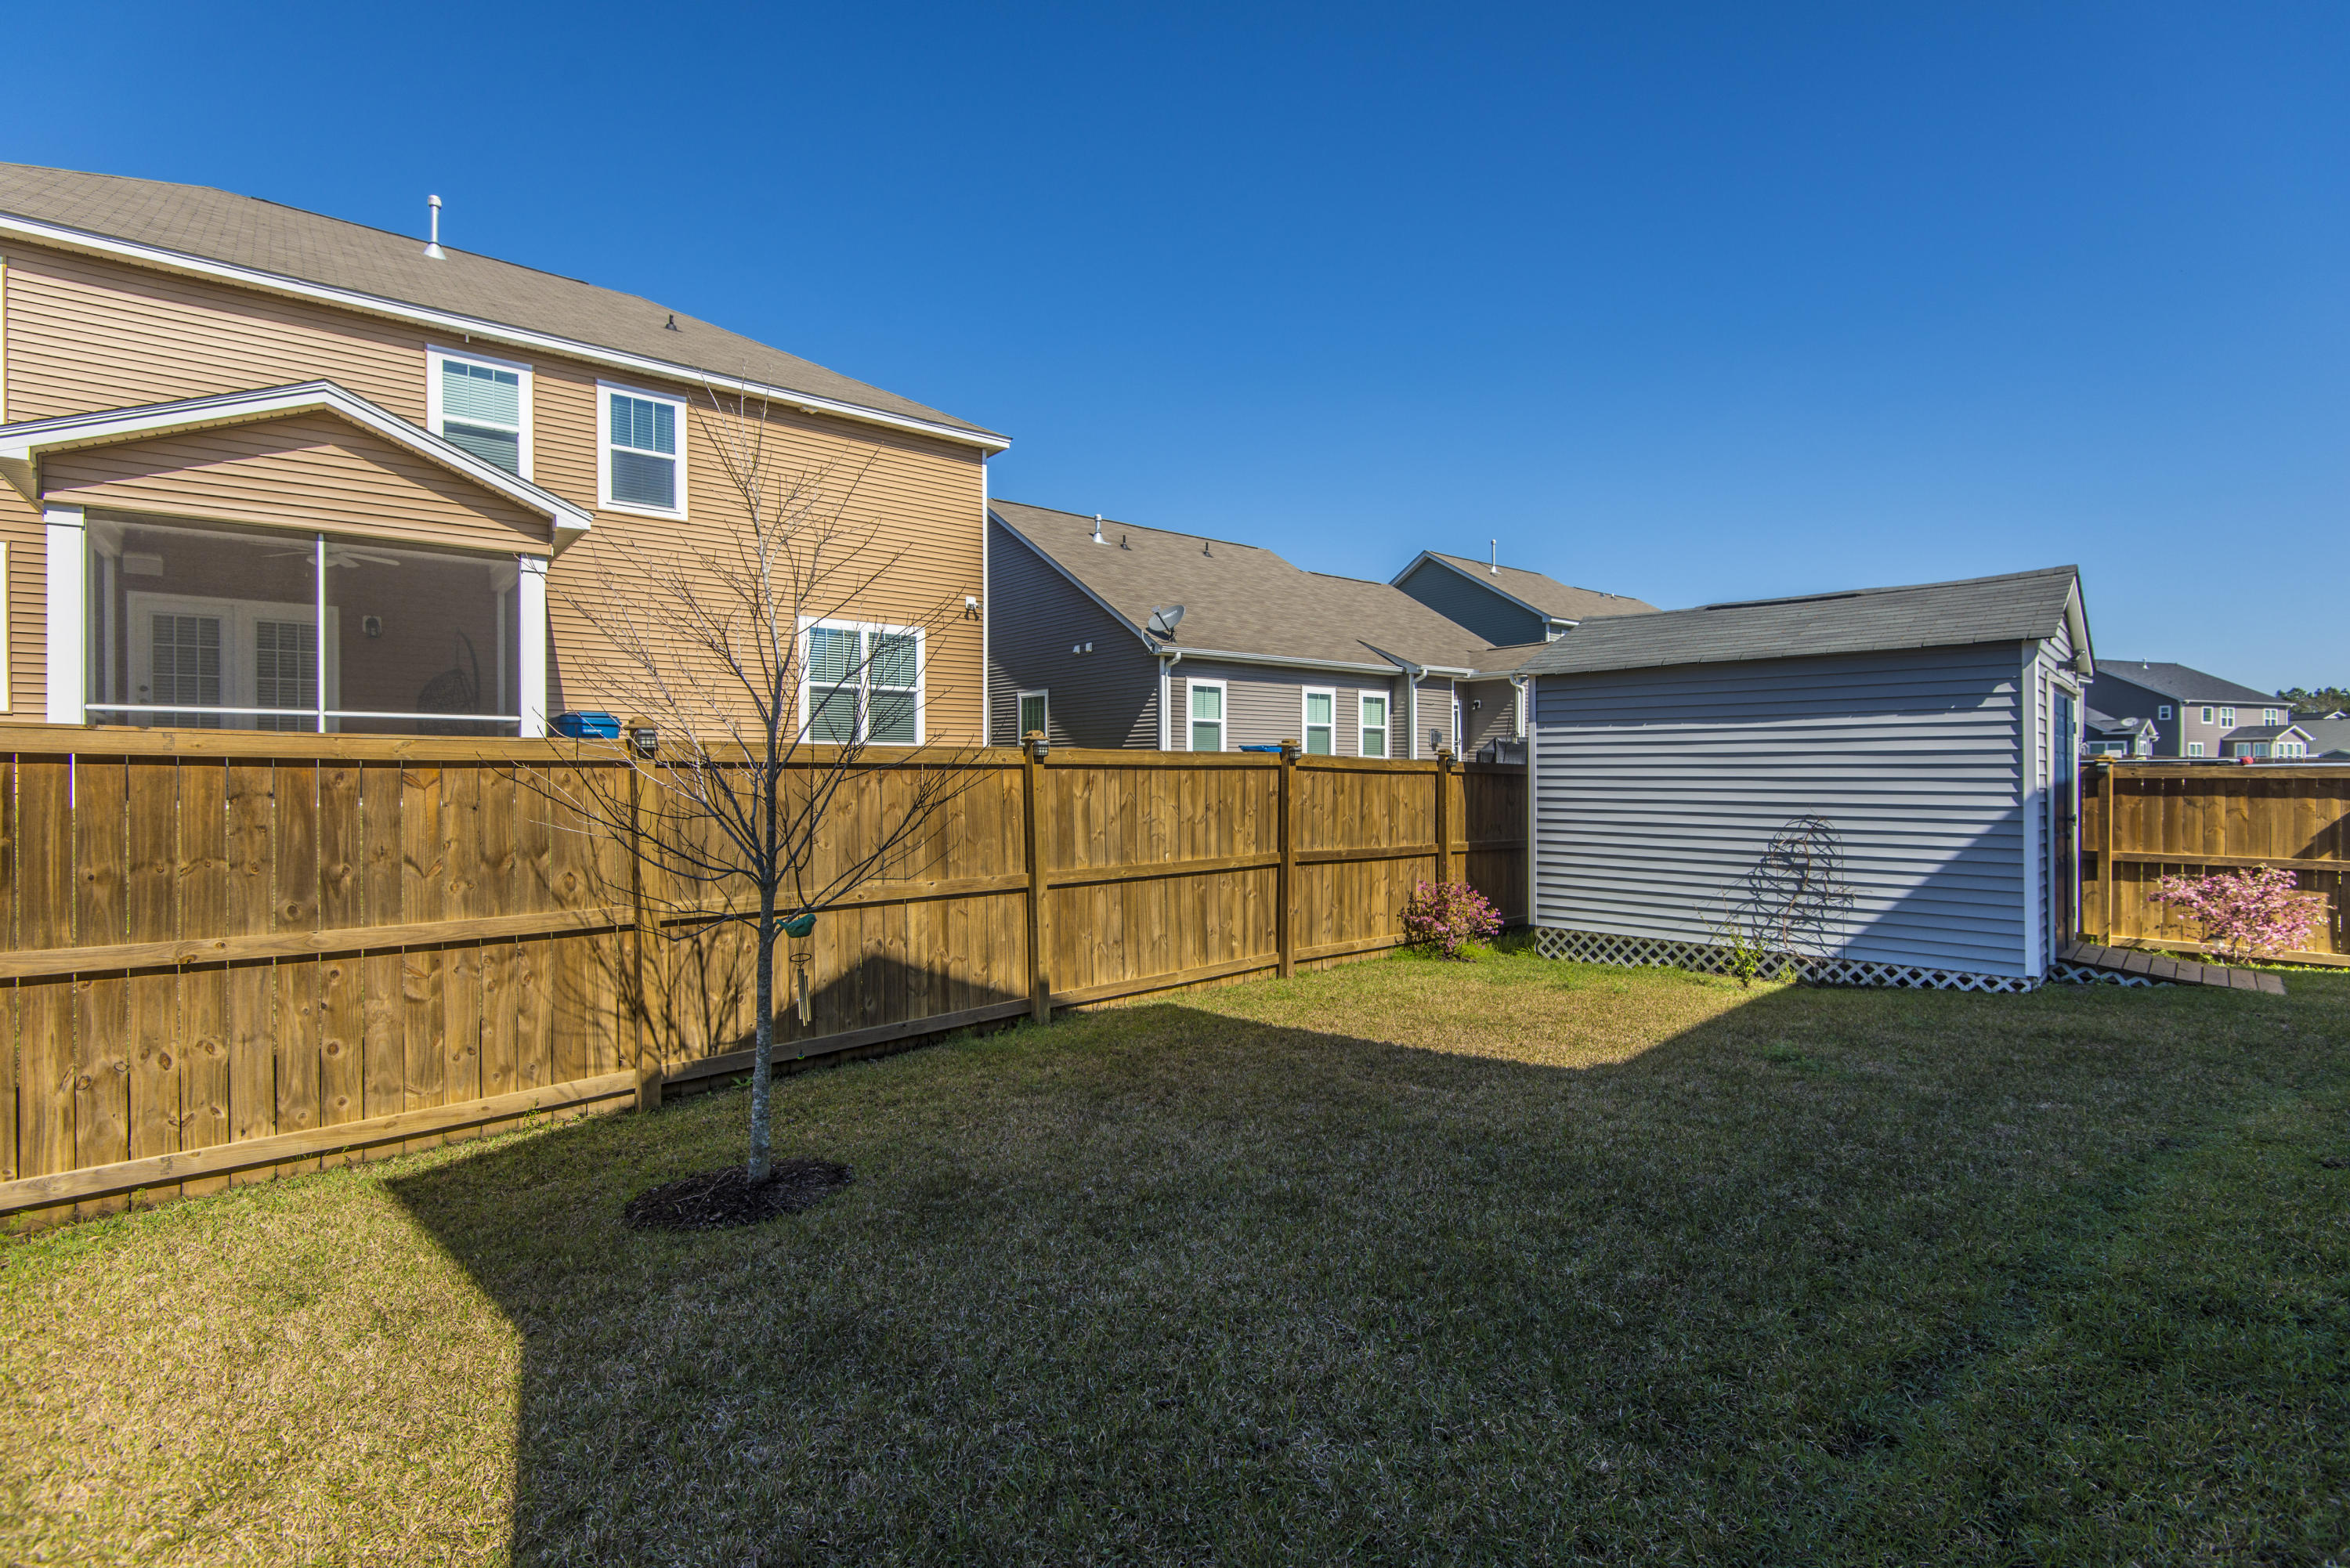 Photo of 112 Vessey Dr, Moncks Corner, SC 29461